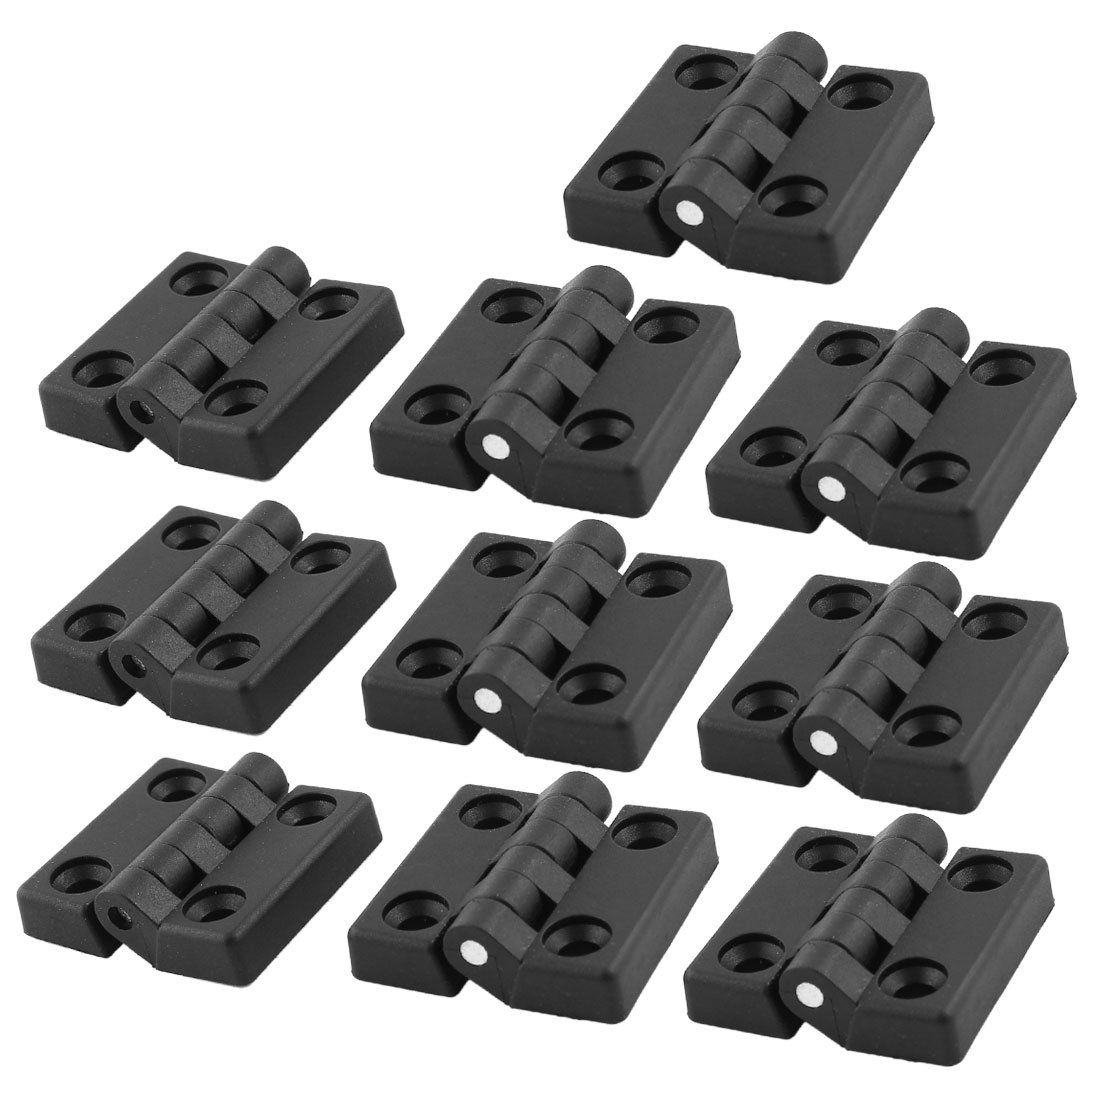 Uxcell a14051000ux0043 50 mm x 47 mm Cabinet Cupboard Door Butt Ball Bearing Hinge  Black (Pack of 10)